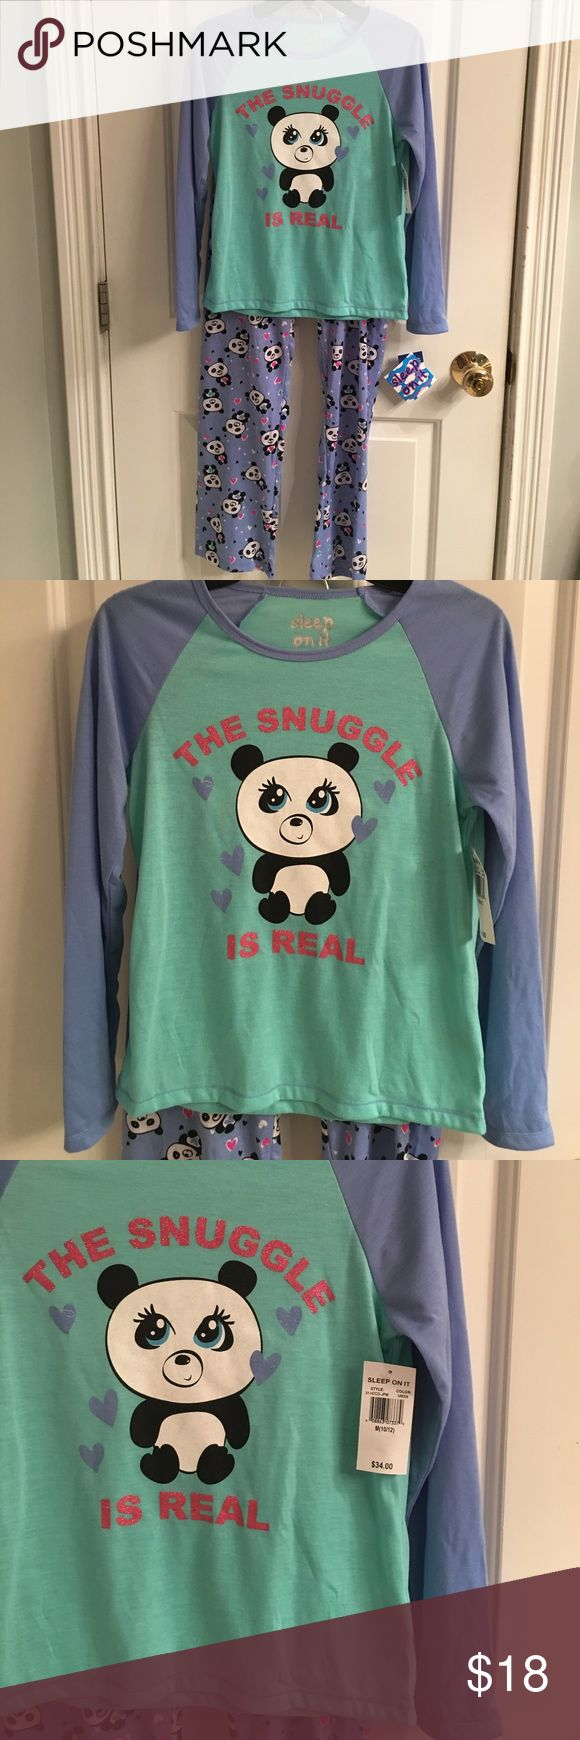 NWT-Sleep On It Two Piece Pajama Set NWT-Sleep On It blue and green two piece pajama set. Long sleeve shirt with The Snuggle Is Real, and a panda bear on the front. Crewneck. The bottoms have panda bears on them. Elastic waistband. Flame resistant. Size 10-12 medium. Excellent condition Sleep On It Pajamas Pajama Sets